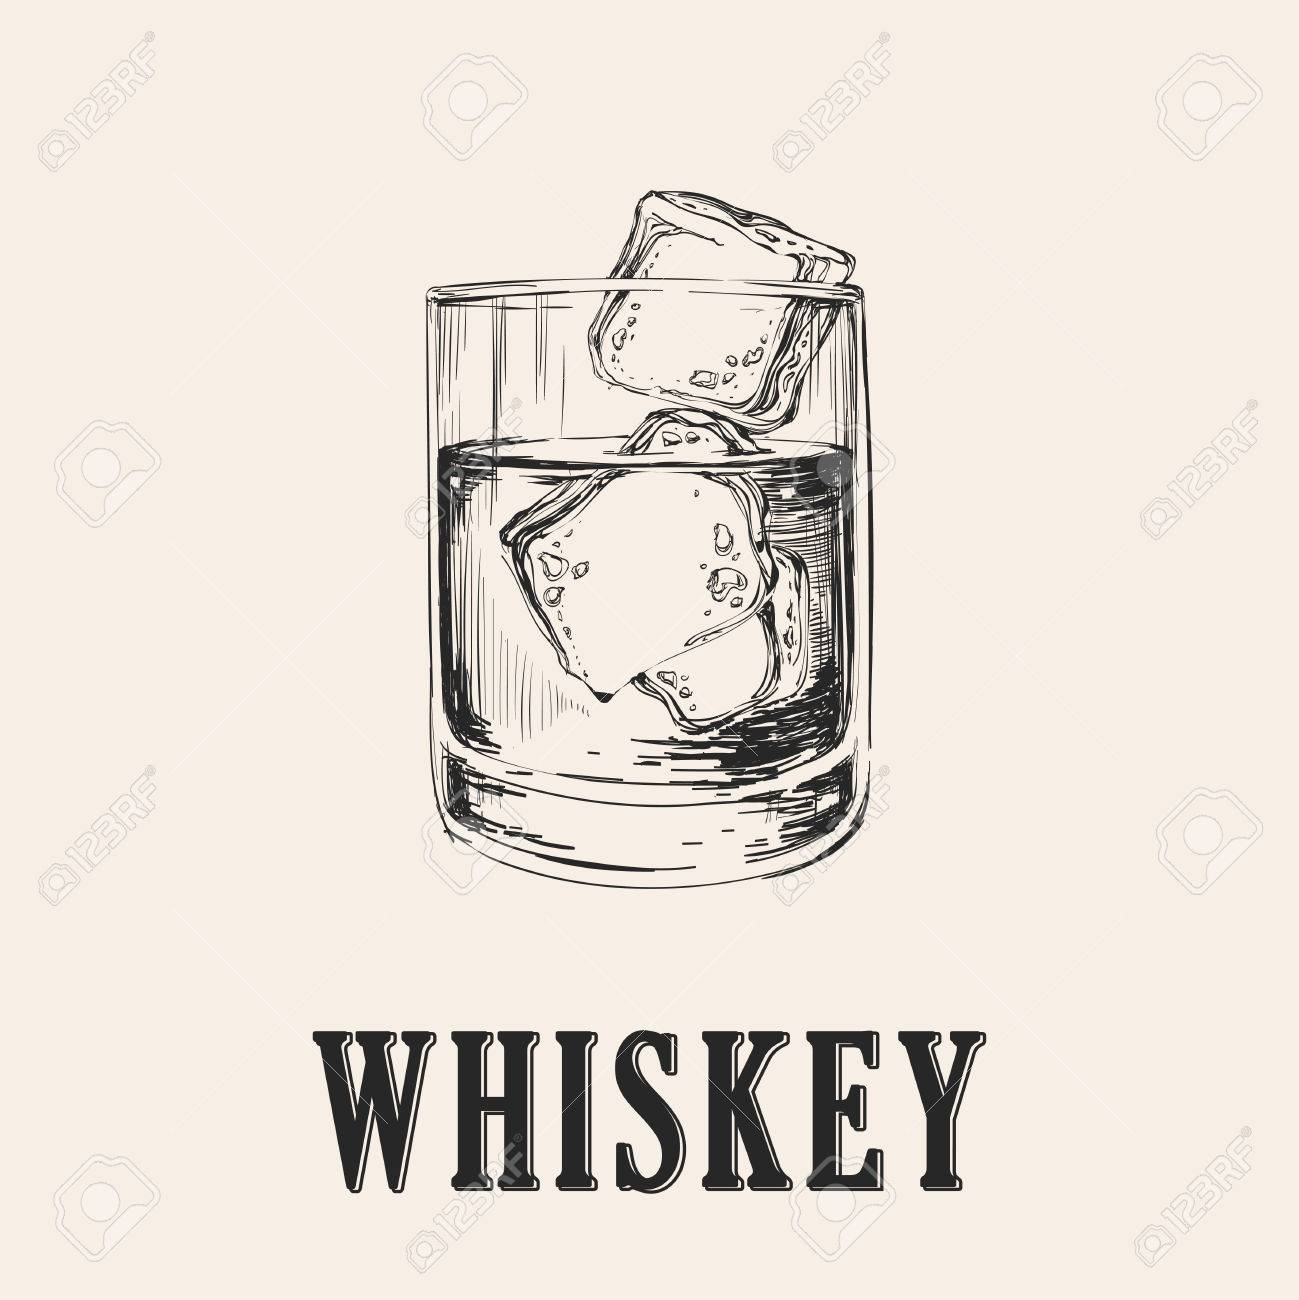 Whiskey Glass. Hand Drawn Drink Vector Illustration. - 69006419